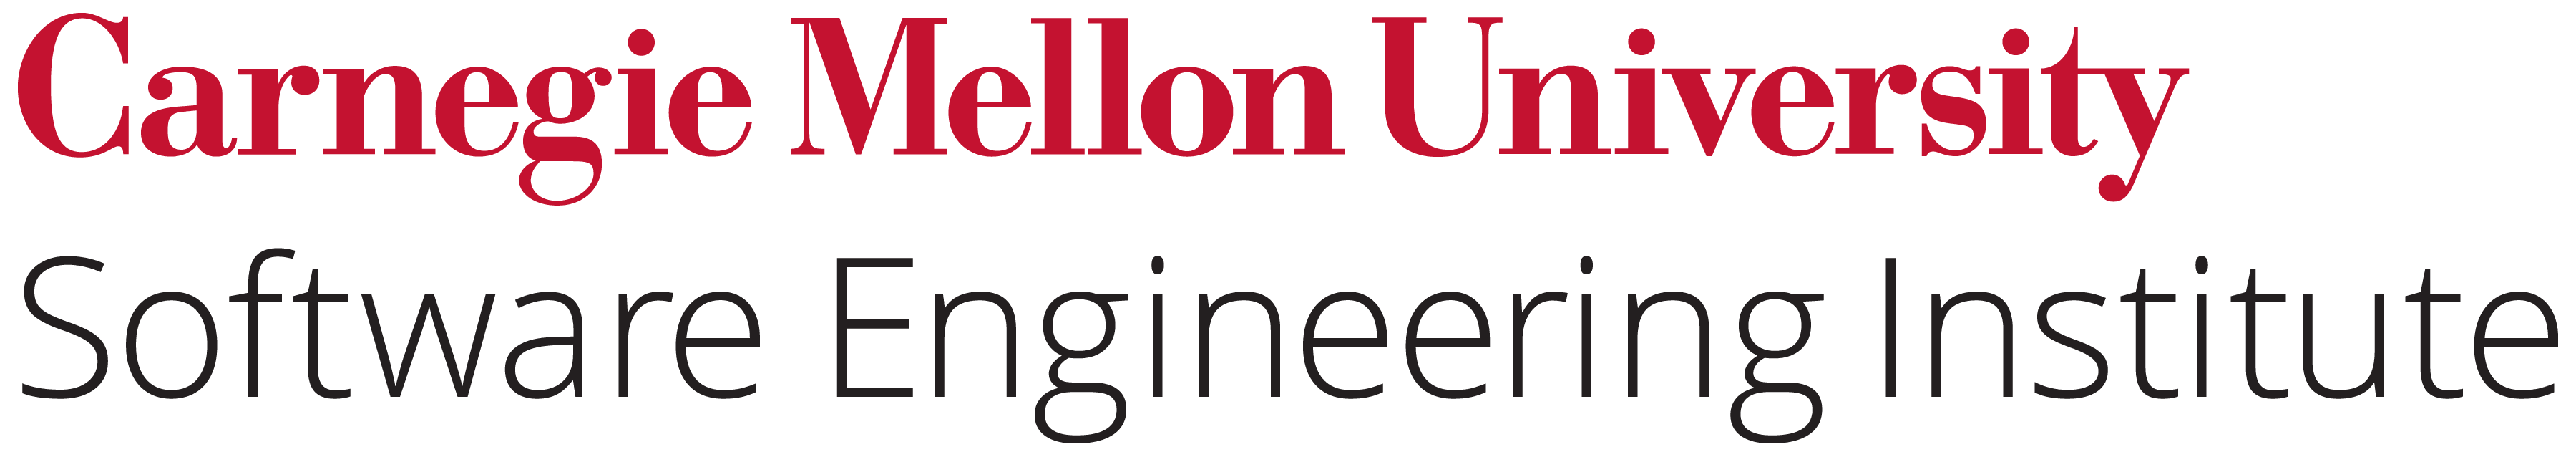 Carnegie Mellon University | Software Engineering Institute